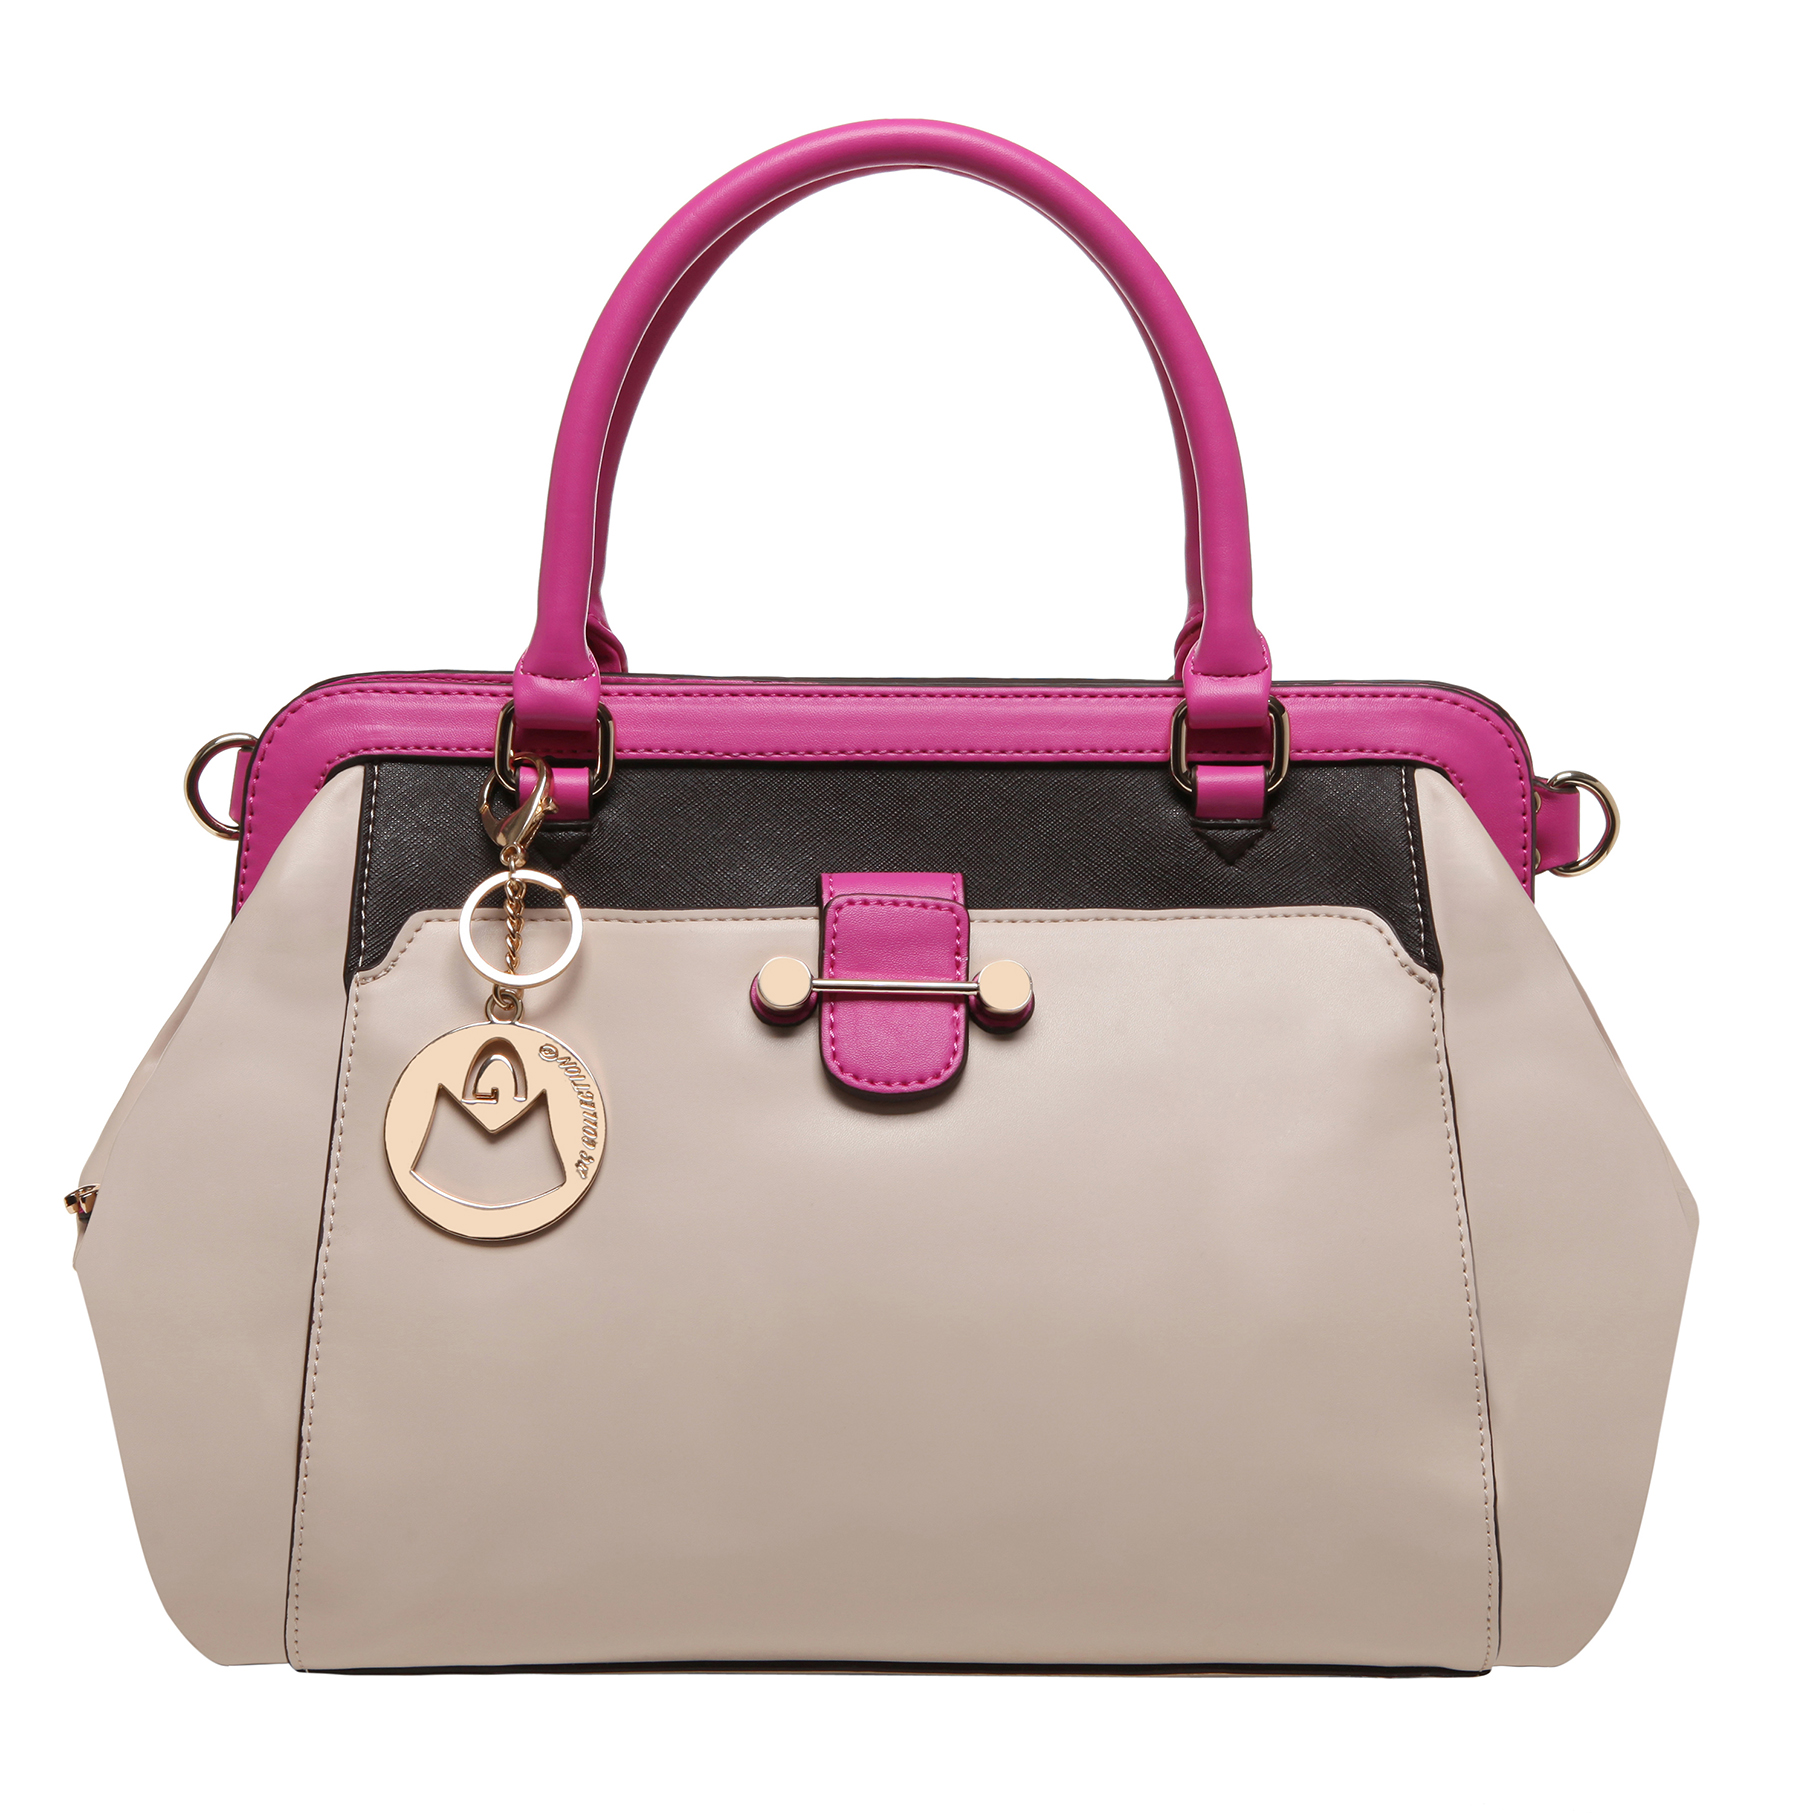 mg-collection-kaely-top-handle-tote-tb-h0603bei-2.jpg